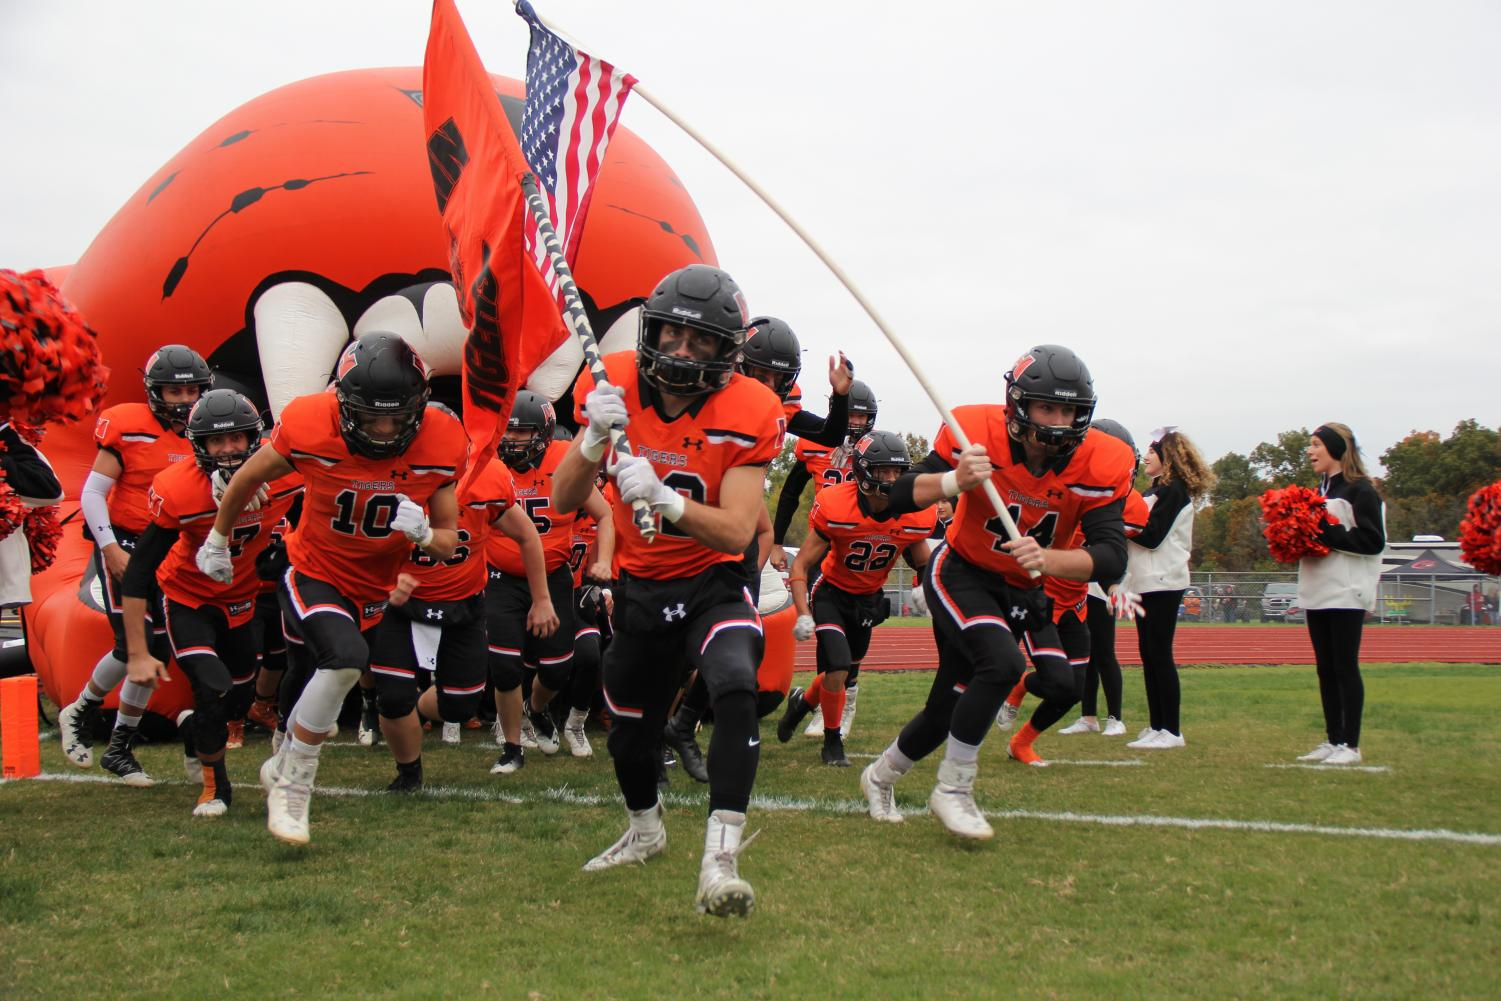 Seniors, Kyle Matuzak and Jase Gosha lead the team onto the field for round 1 of the playoffs.